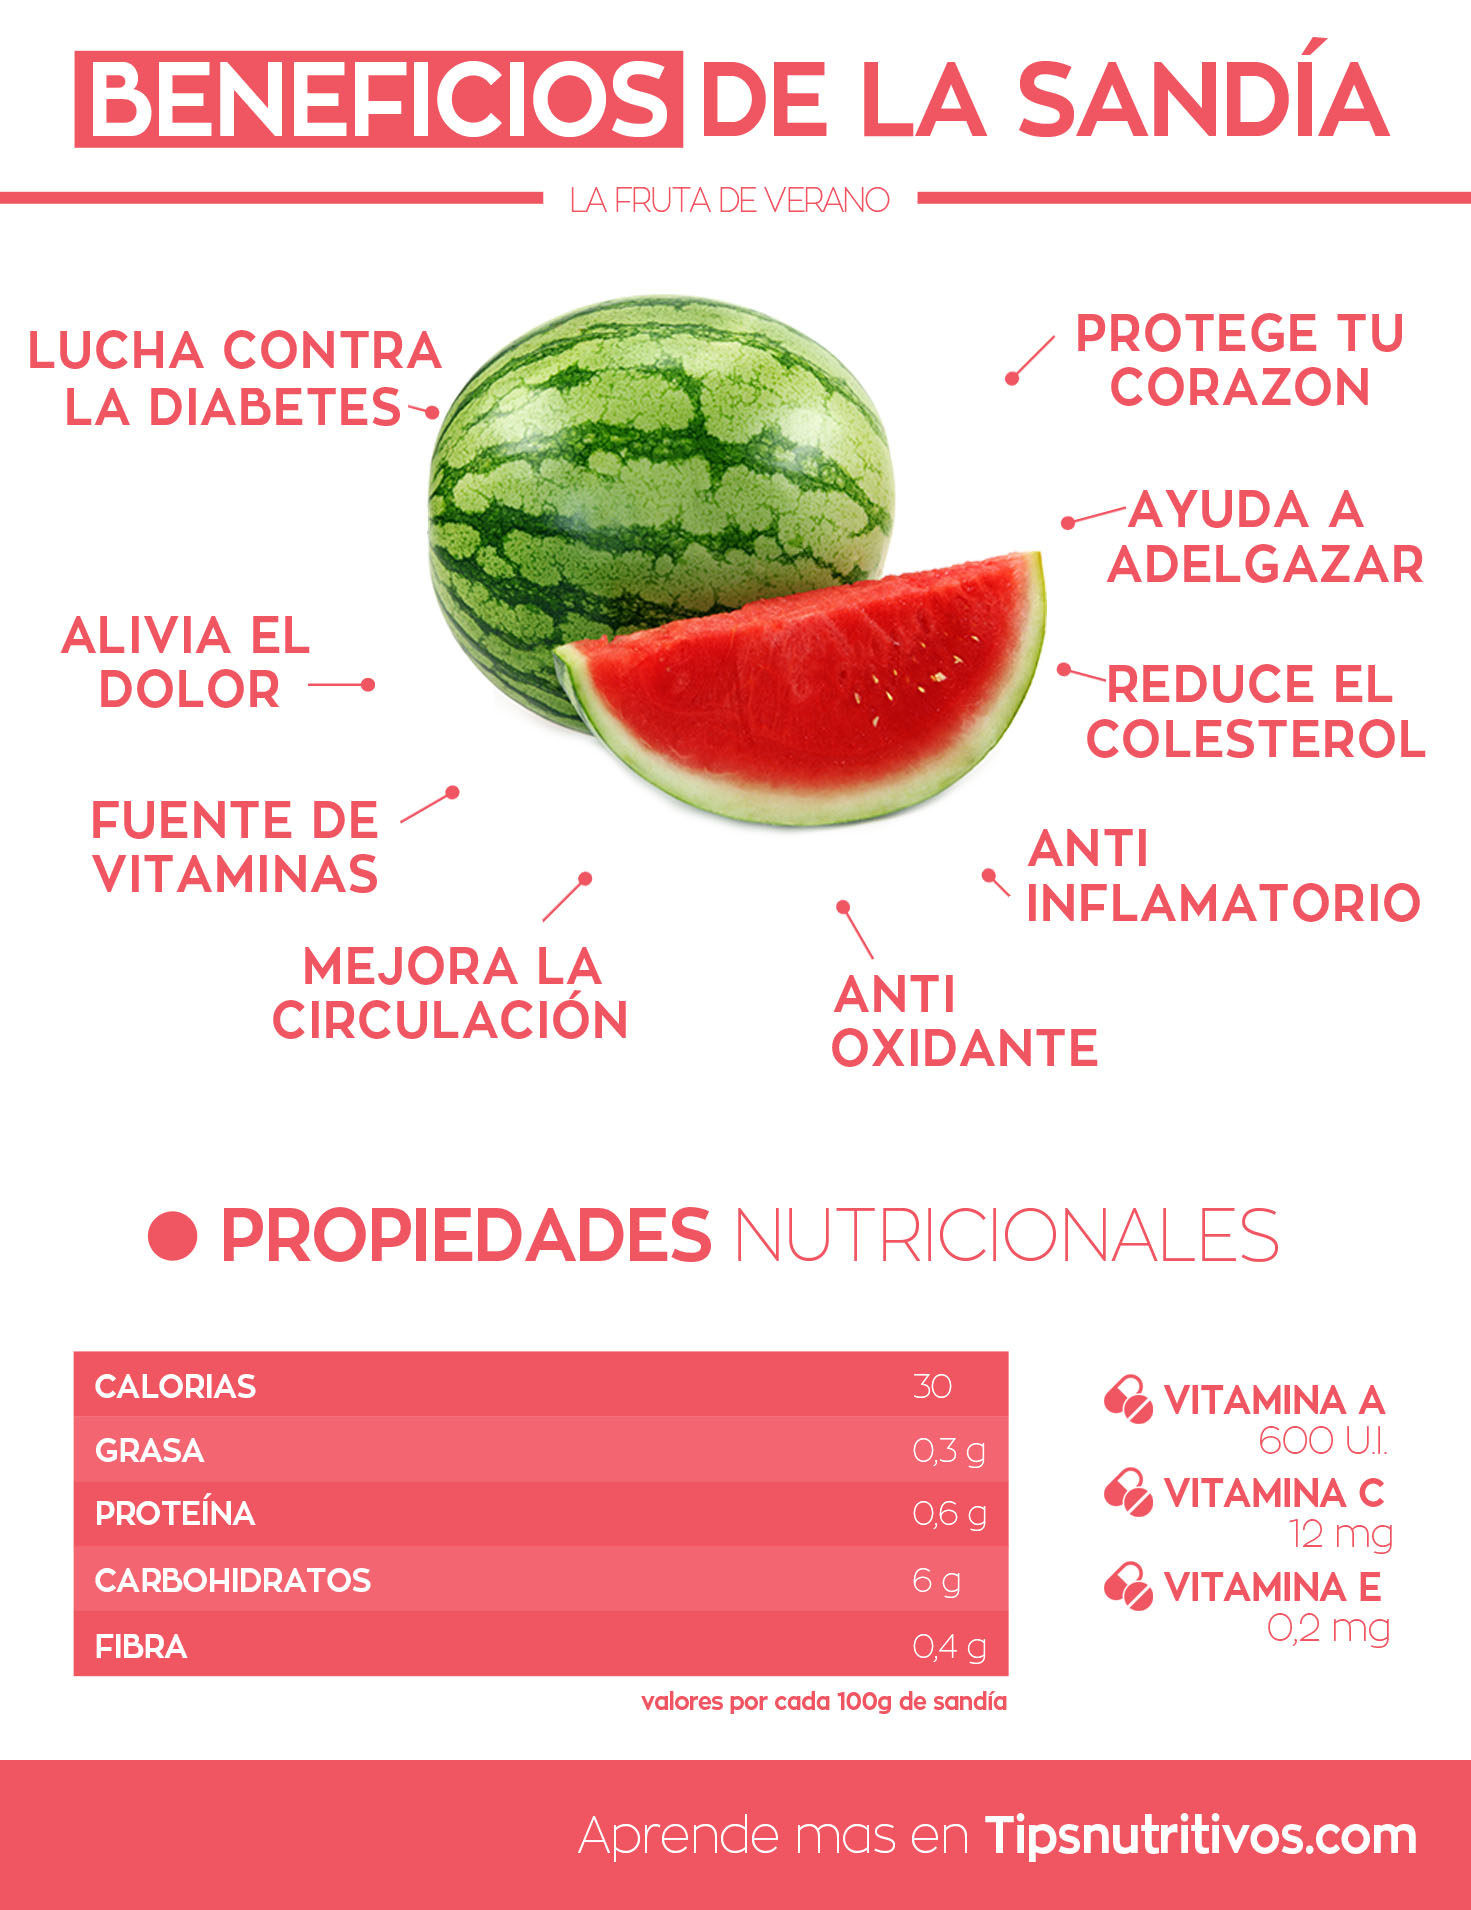 Beneficios de la sandia